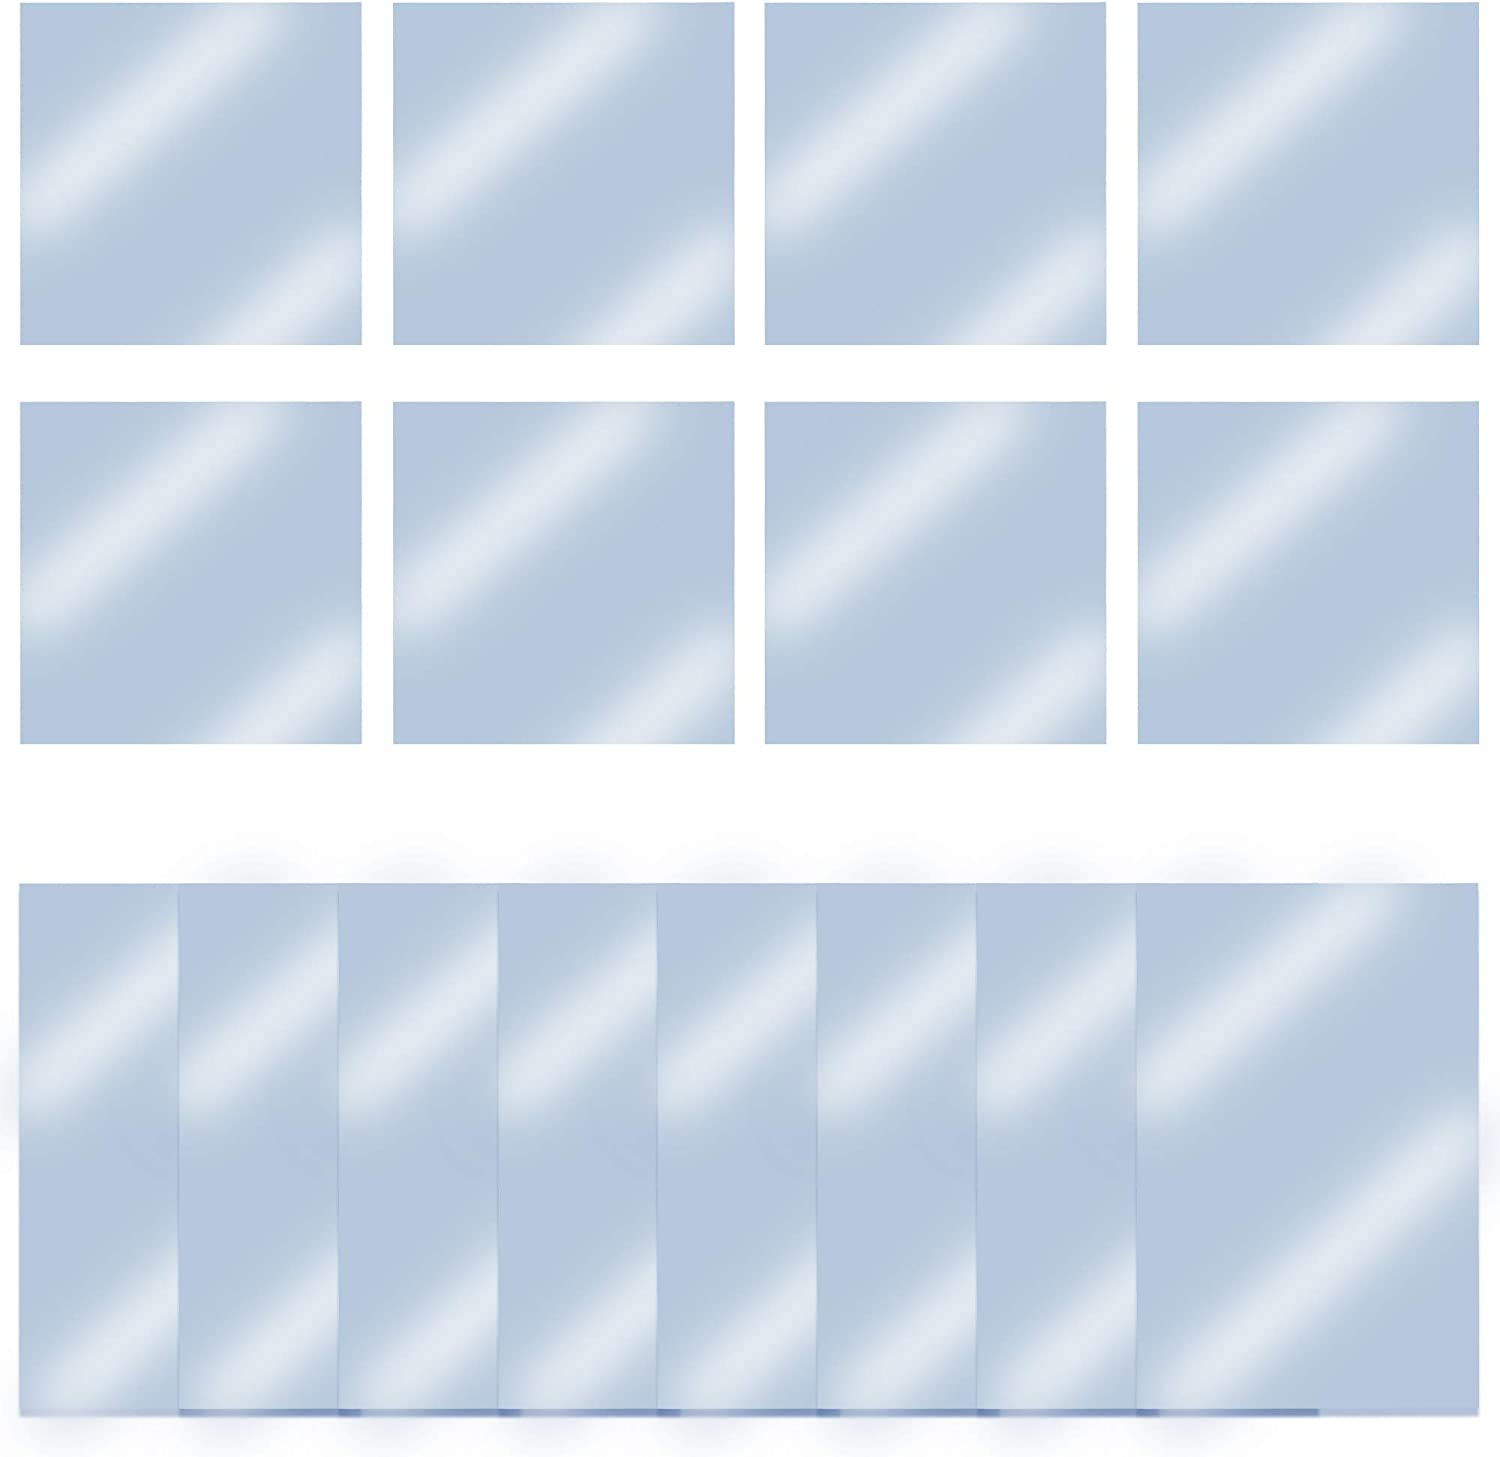 16 Pieces Self Adhesive Acrylic Mirror Sheets, Non-Glass Mirror Stickers Mirror Tiles for Home Wall Decor in 2 Sizes (9 x 6 Inch and 6 x 6 Inch)